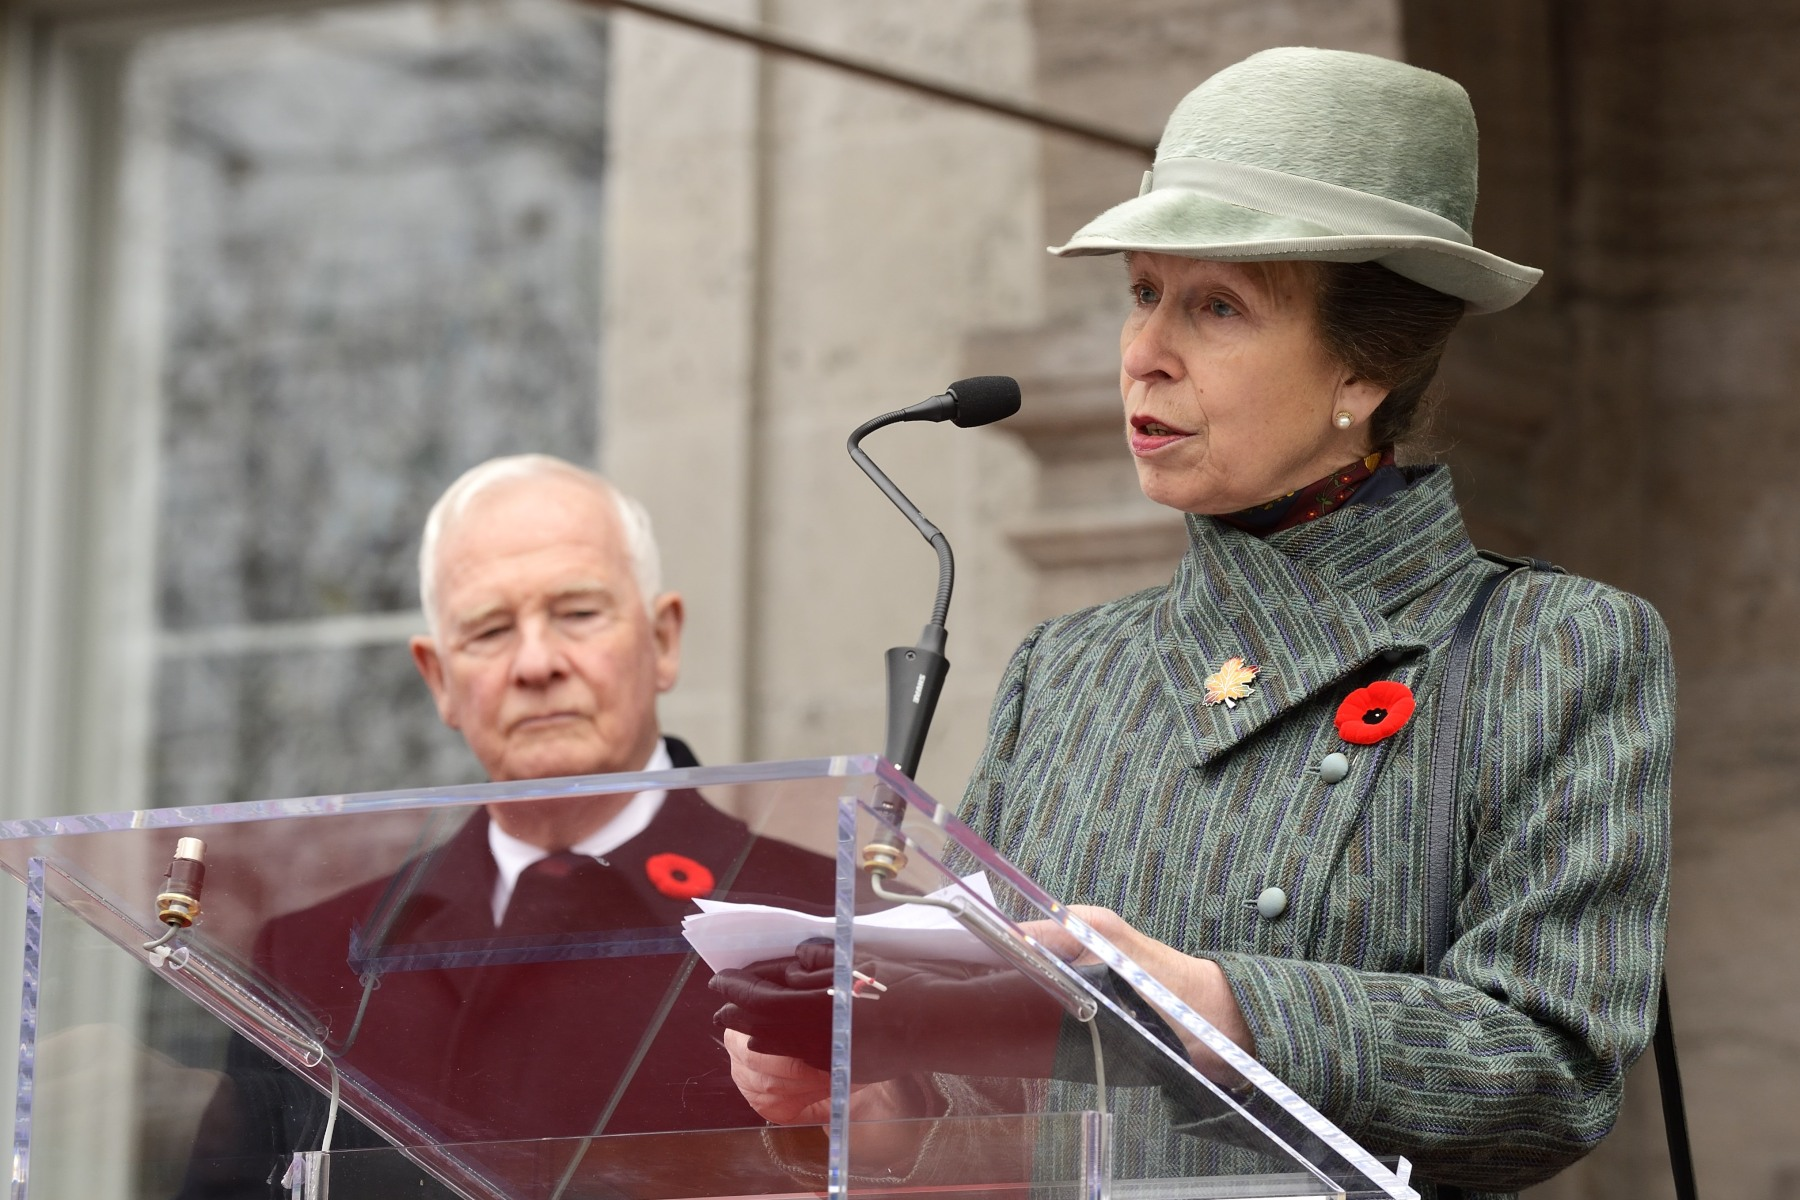 """I think we especially remember the two servicemen, Warrant Officer Patrice Vincent and Cpl. Nathan Cirillo, who were recently killed in the service of their country, and we will always honour the sacrifice they made on behalf of us all."""